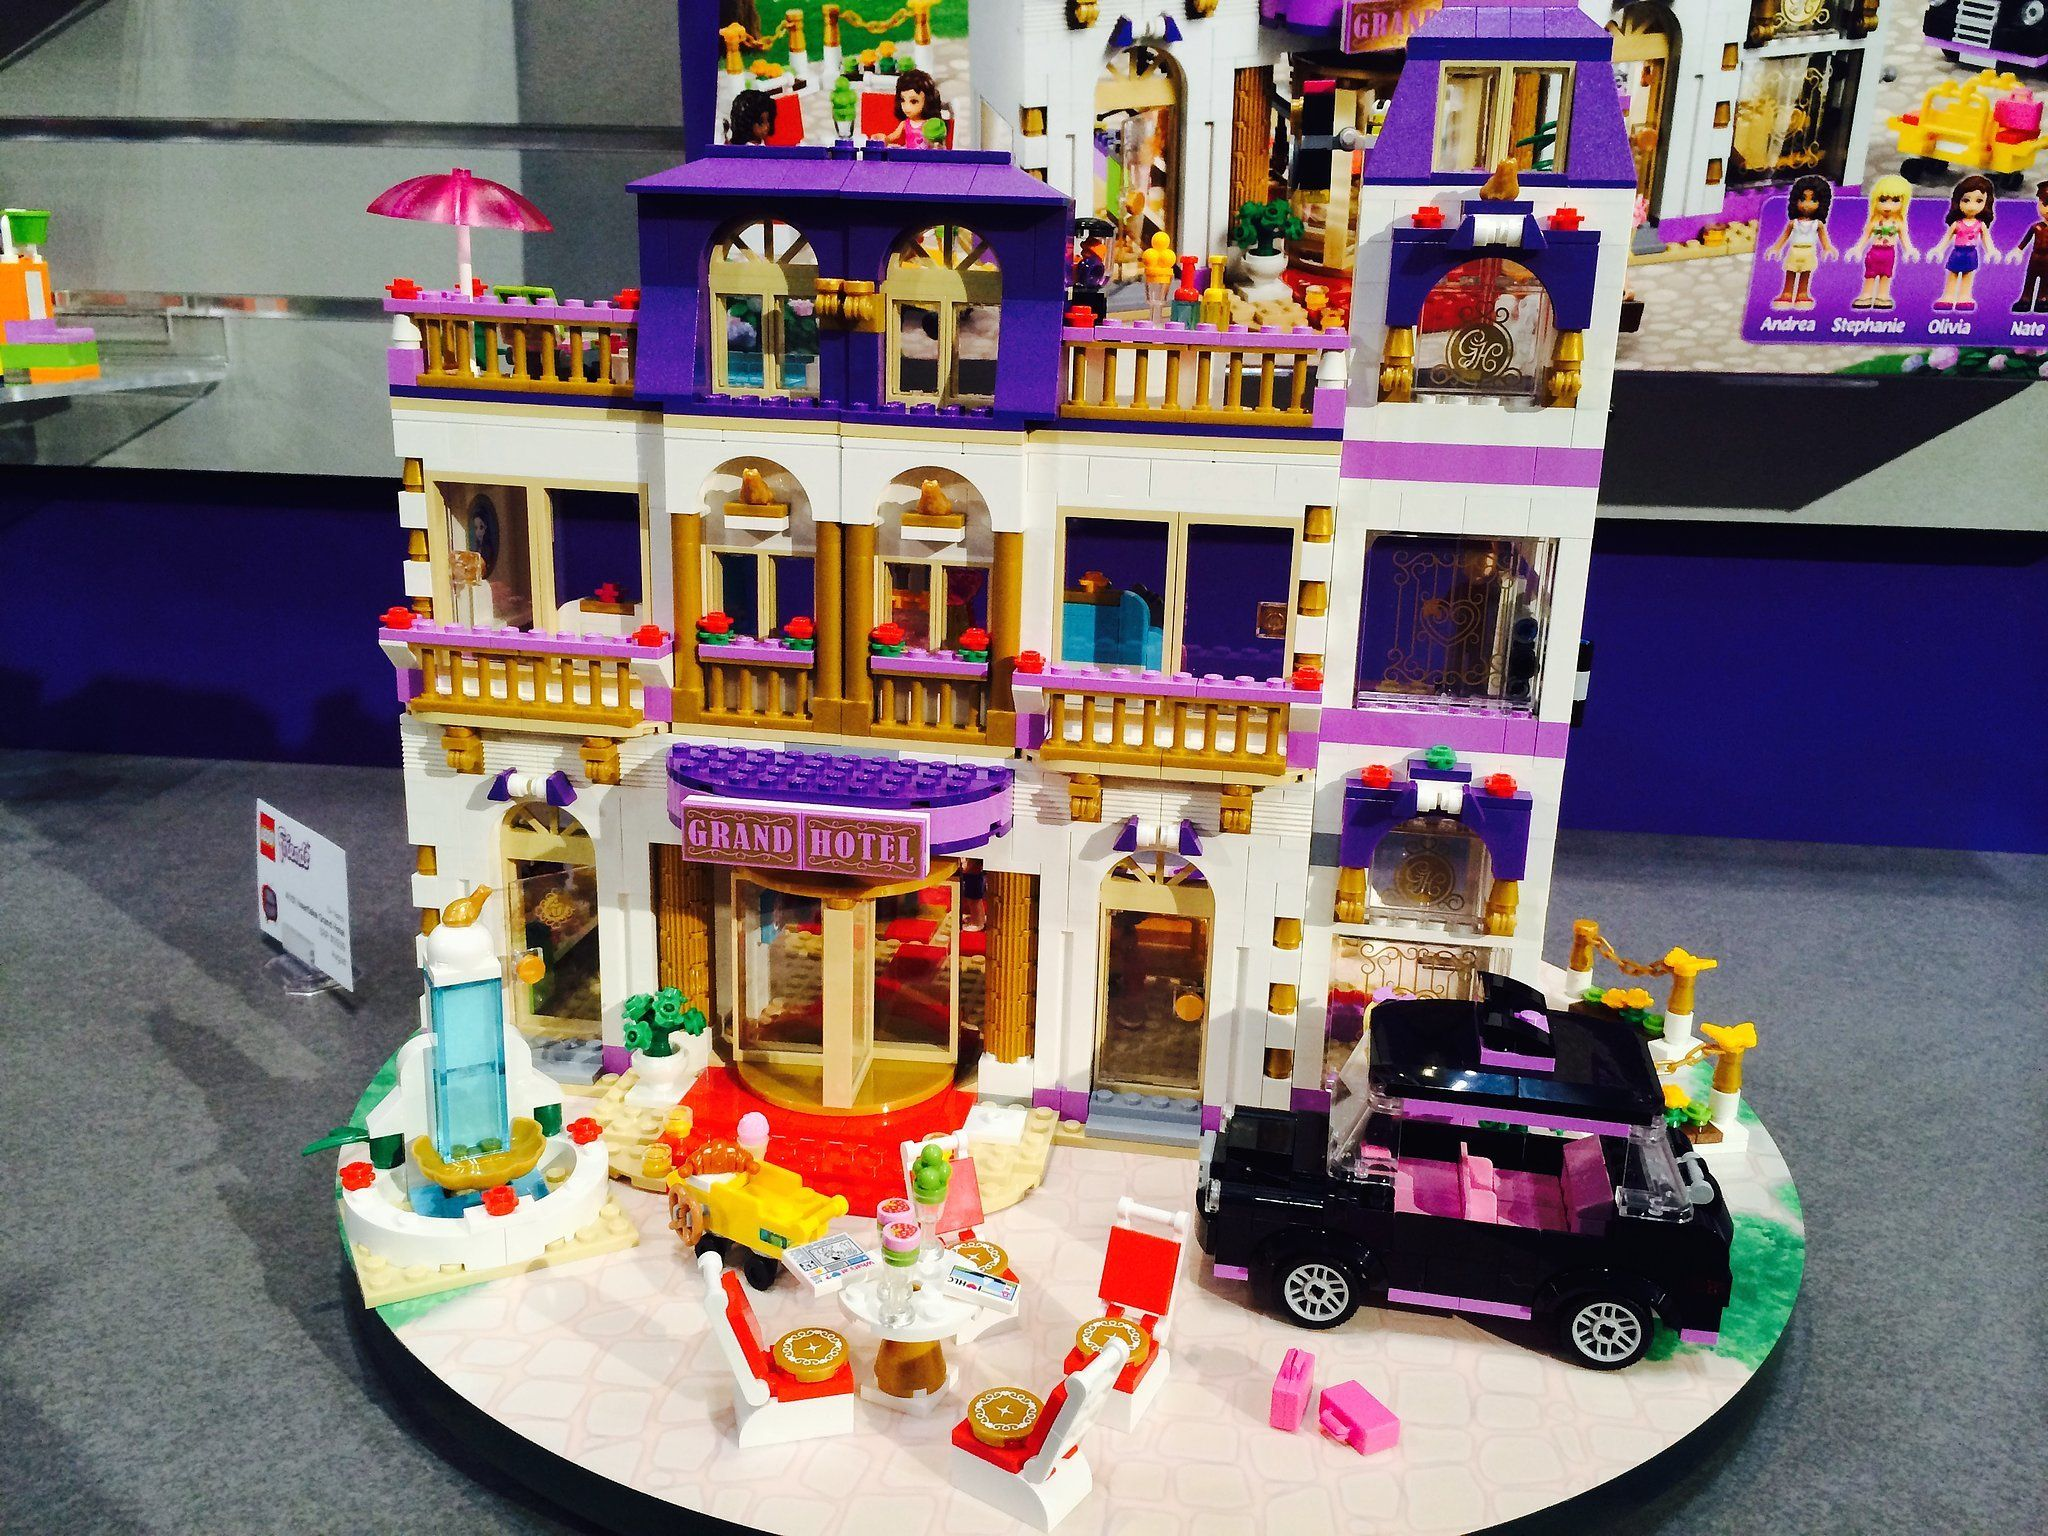 Lego Friends Heartlake Grand Hotel Lego Friends Lego Friends